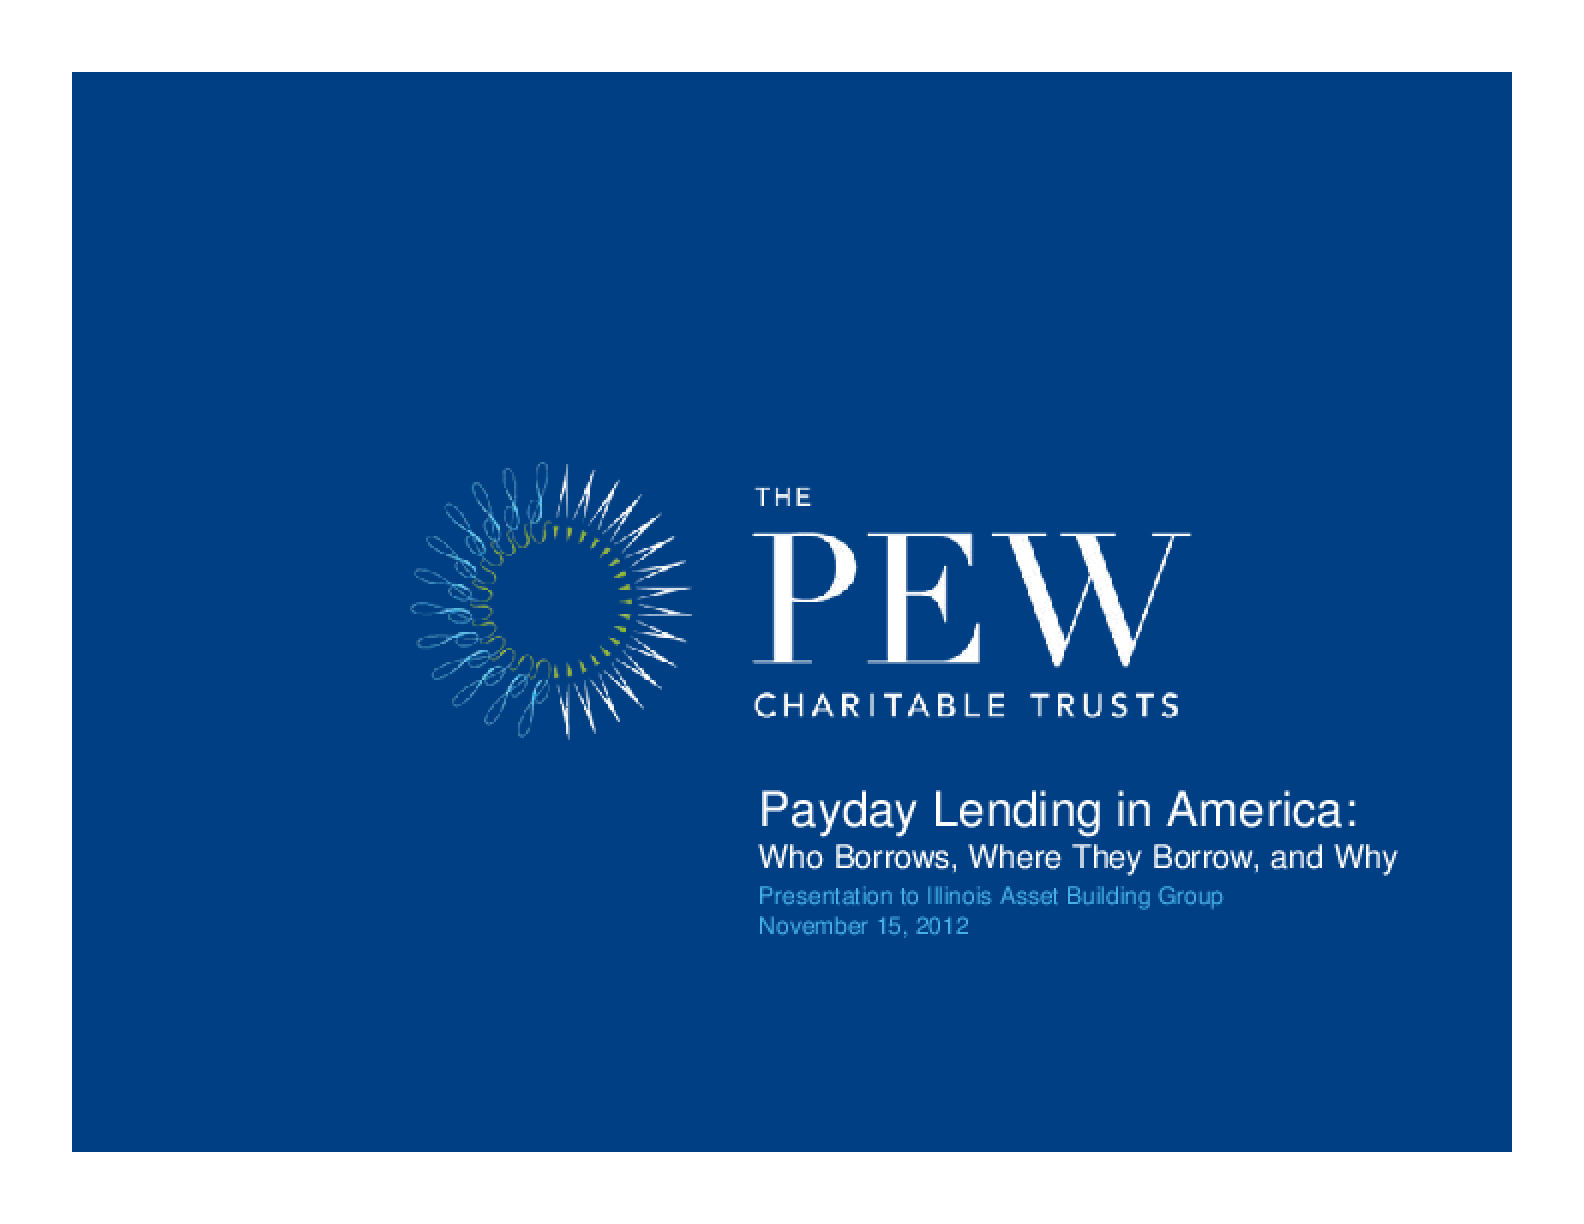 Payday Lending in America: Who Borrows, Where They Borrow, and Why - Presentation to Illinois Asset Building Group